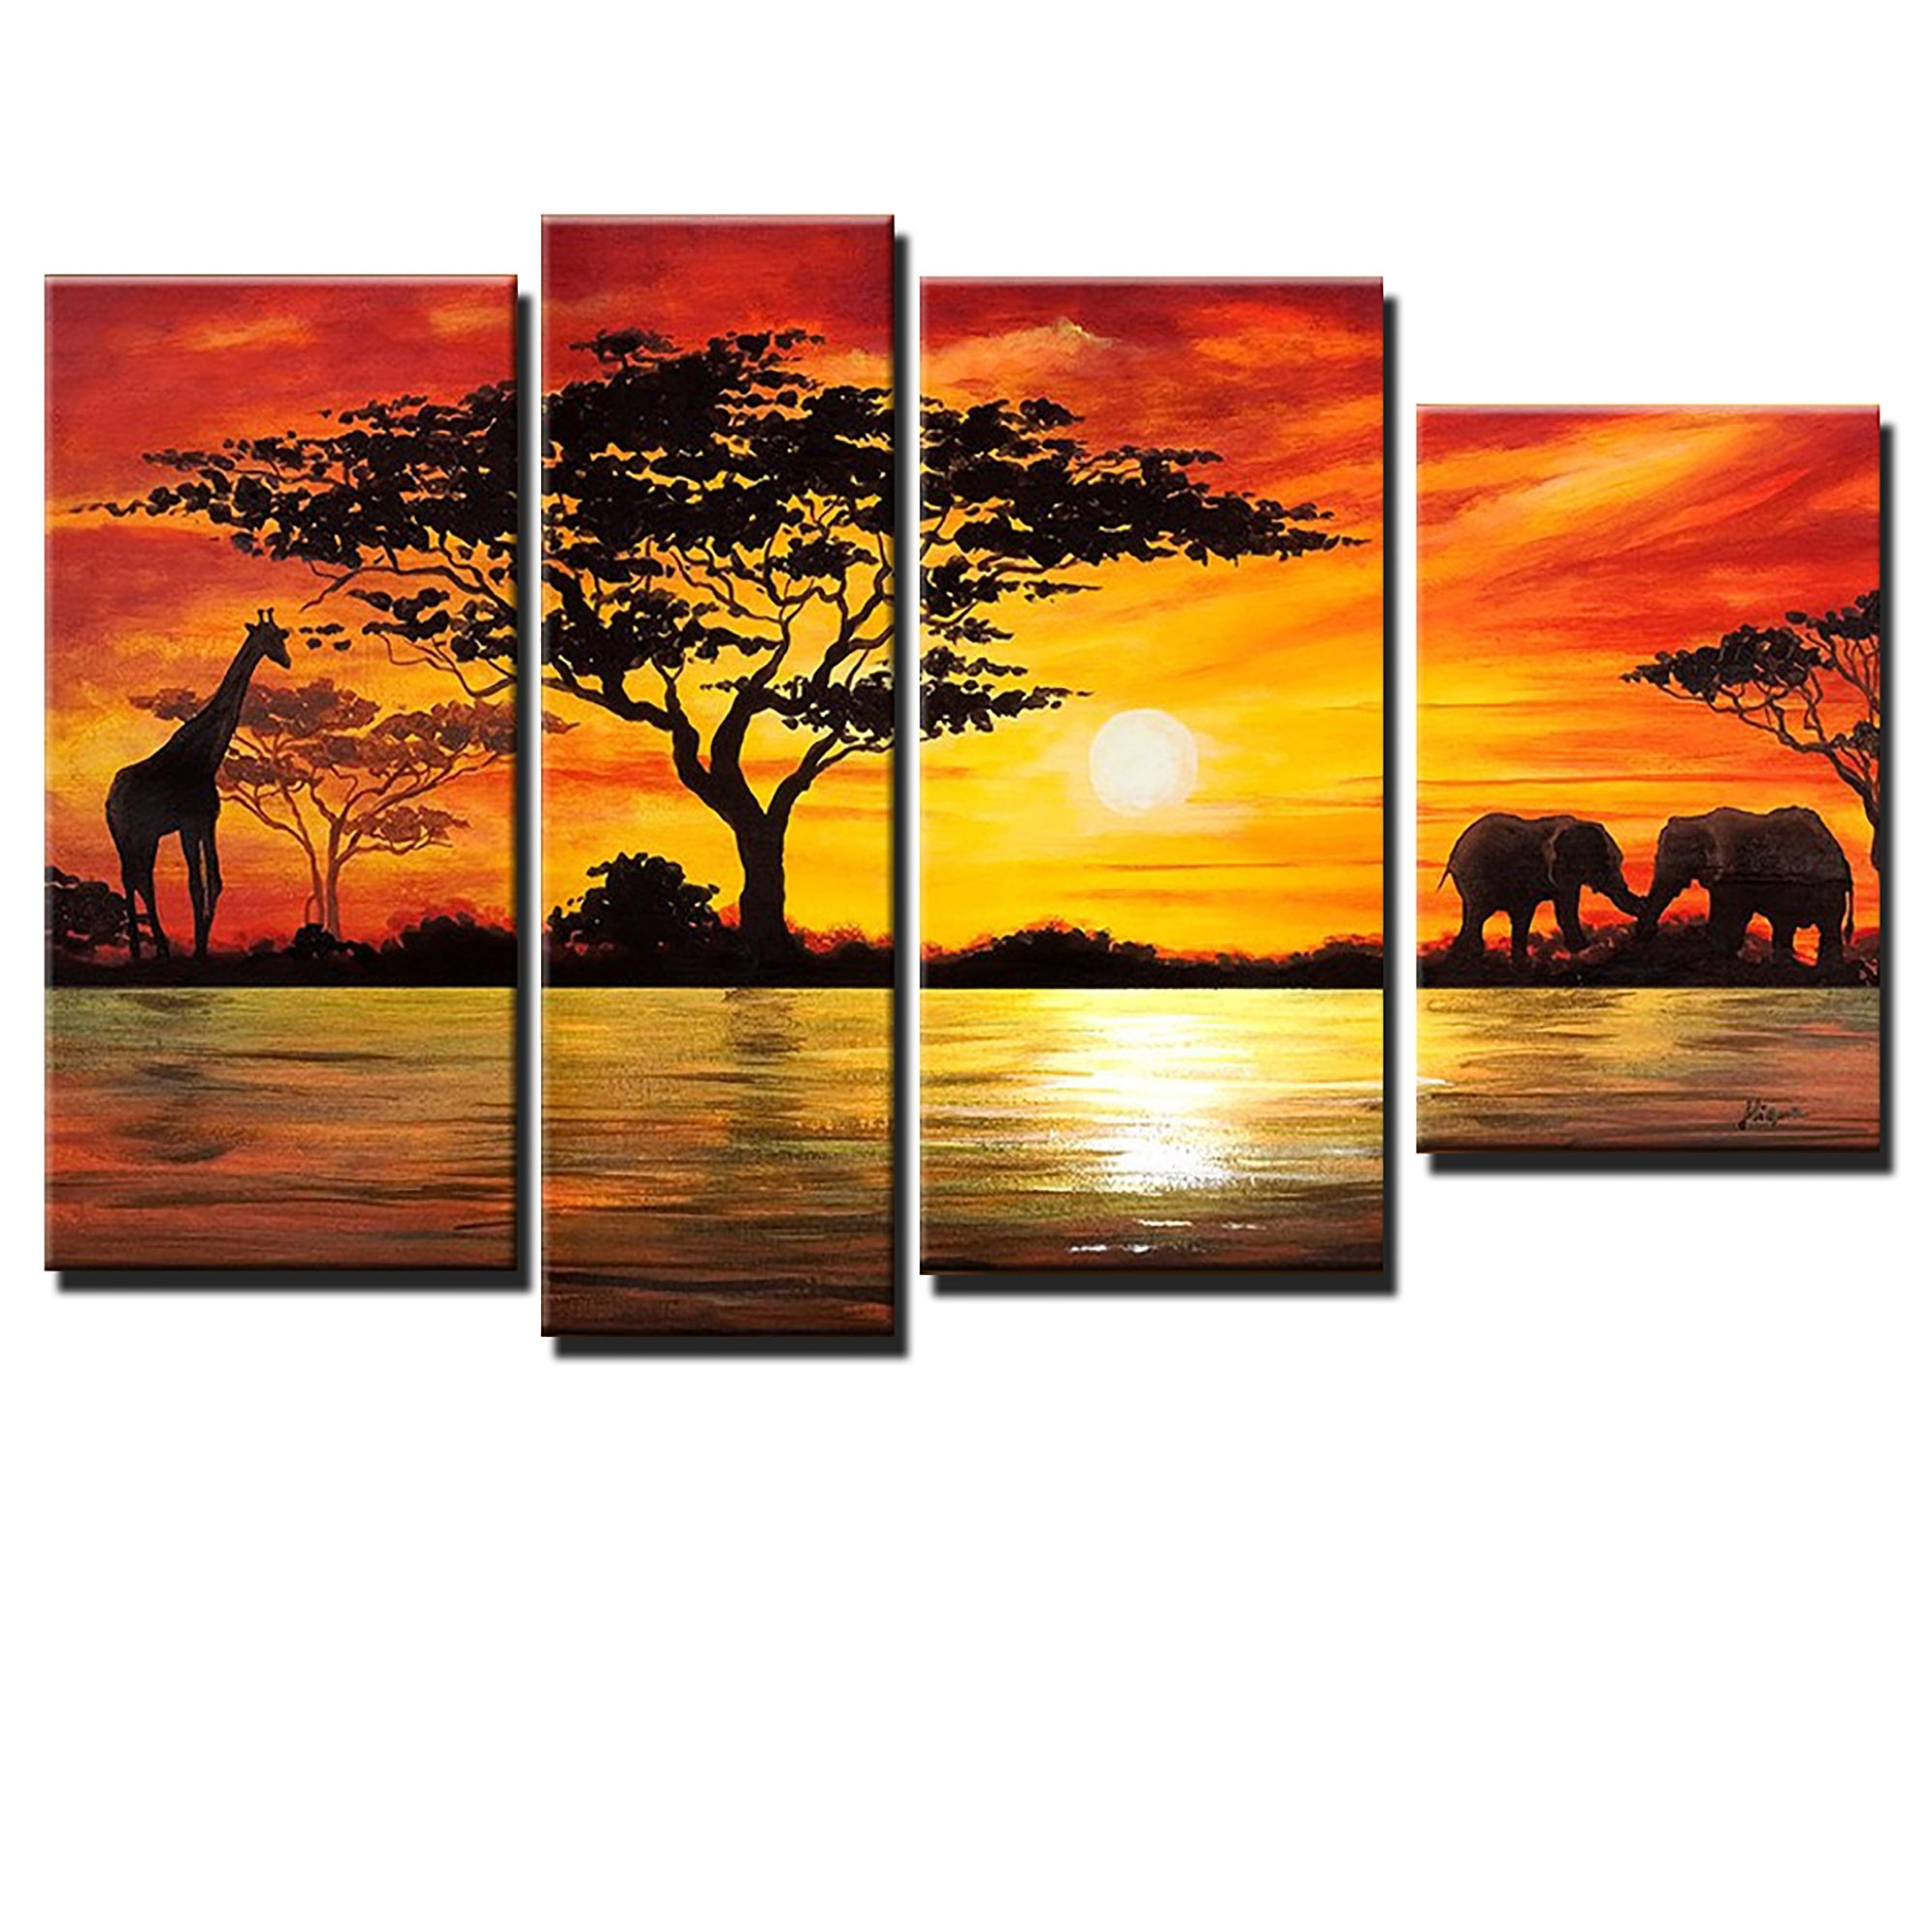 Beauty Of Africa Landscape Canvas Wall Art Oil Painting | Lovely Within Most Recent Abstract African Wall Art (View 20 of 20)